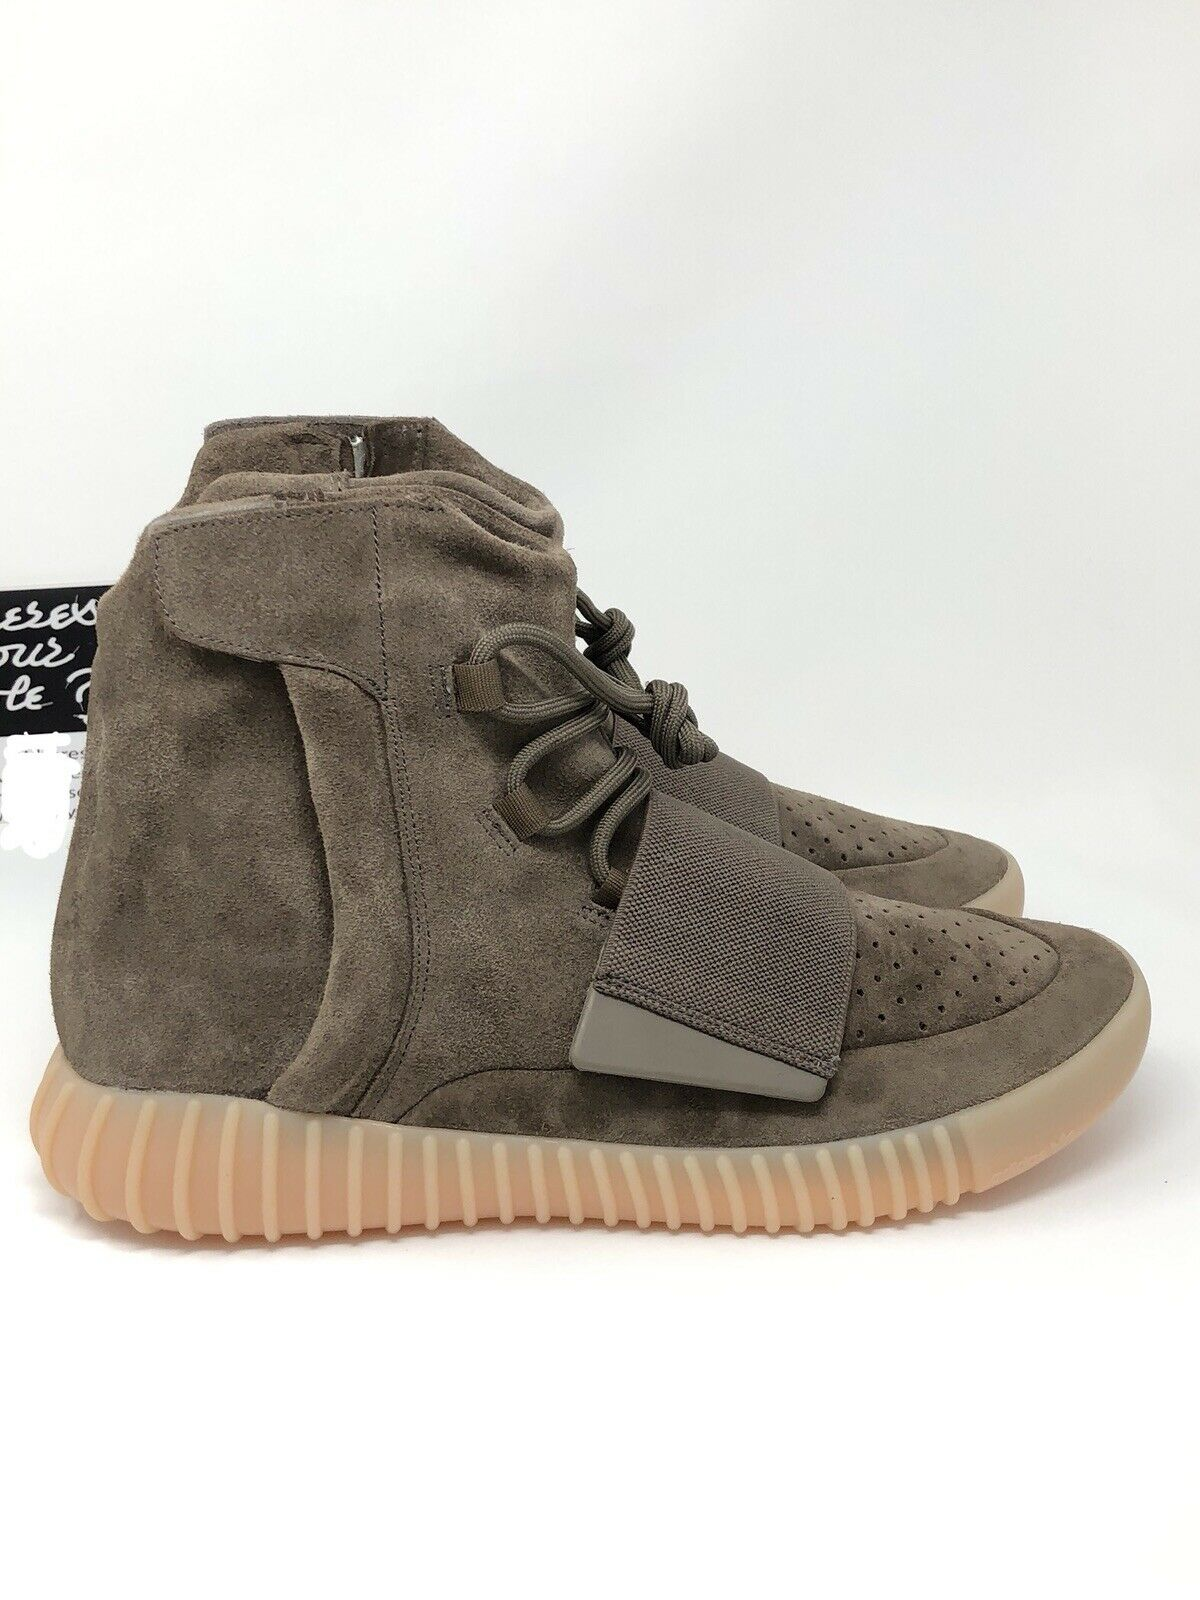 Adidas Yeezy 750 Boost Light Brown Size 10.5 Gum Chocolate Kanye West NEW BY2456